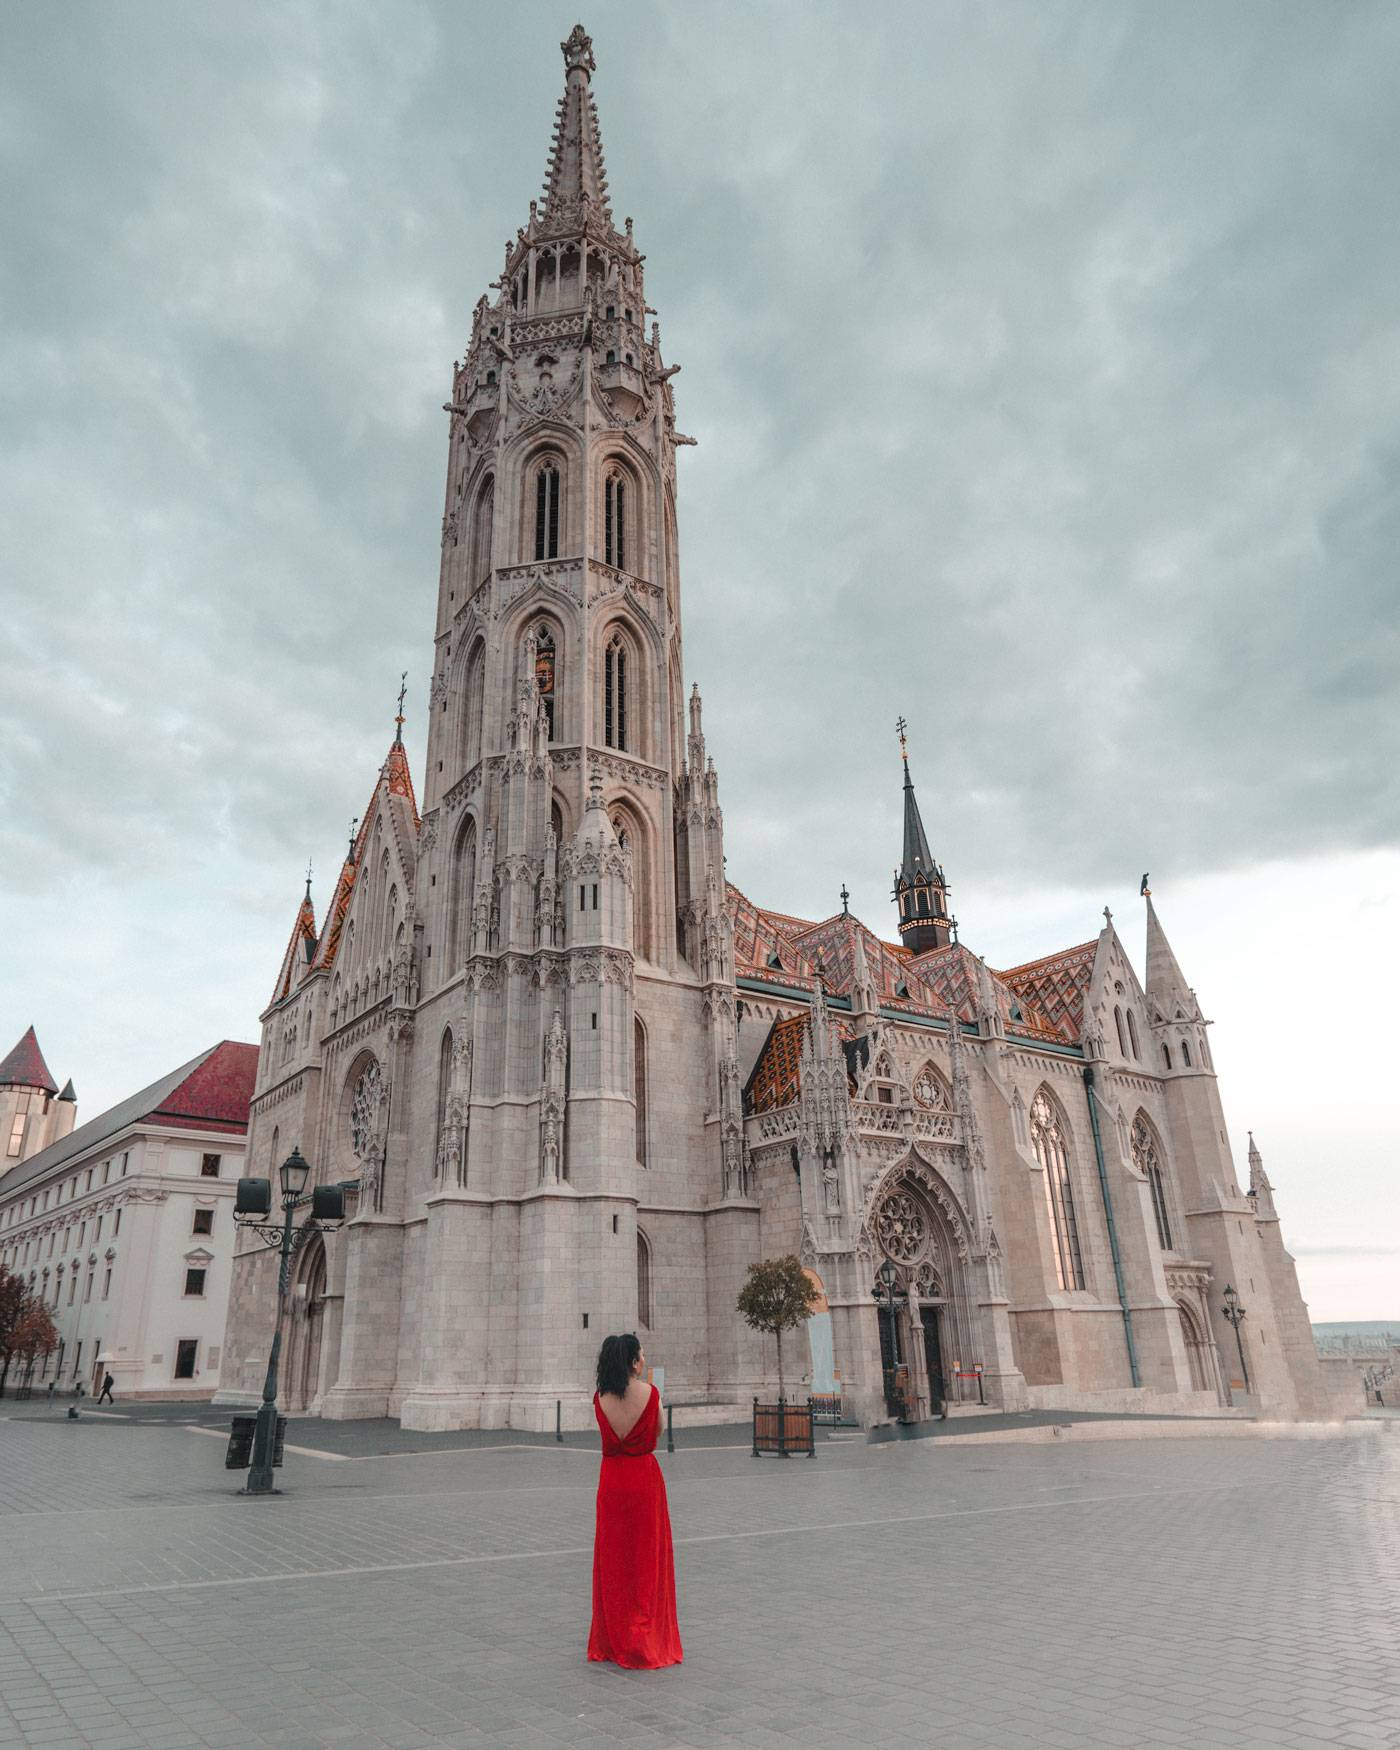 Looking for the best photo spots in Budapest to up your photography game? We have you covered.